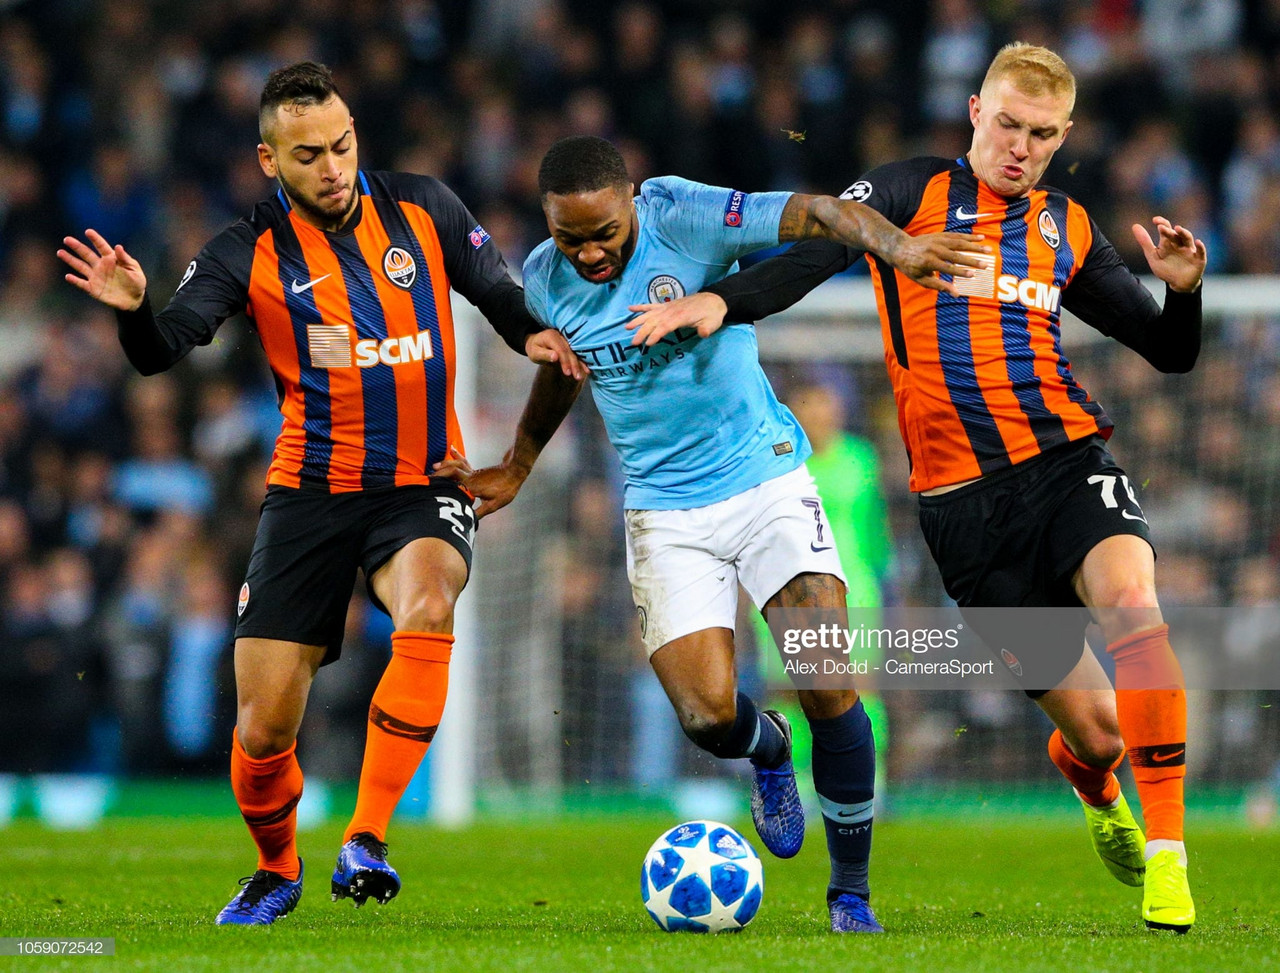 Shakhtar Donetsk vs Manchester City Preview: Blues look to bounce back from defeat in first Champions League tie